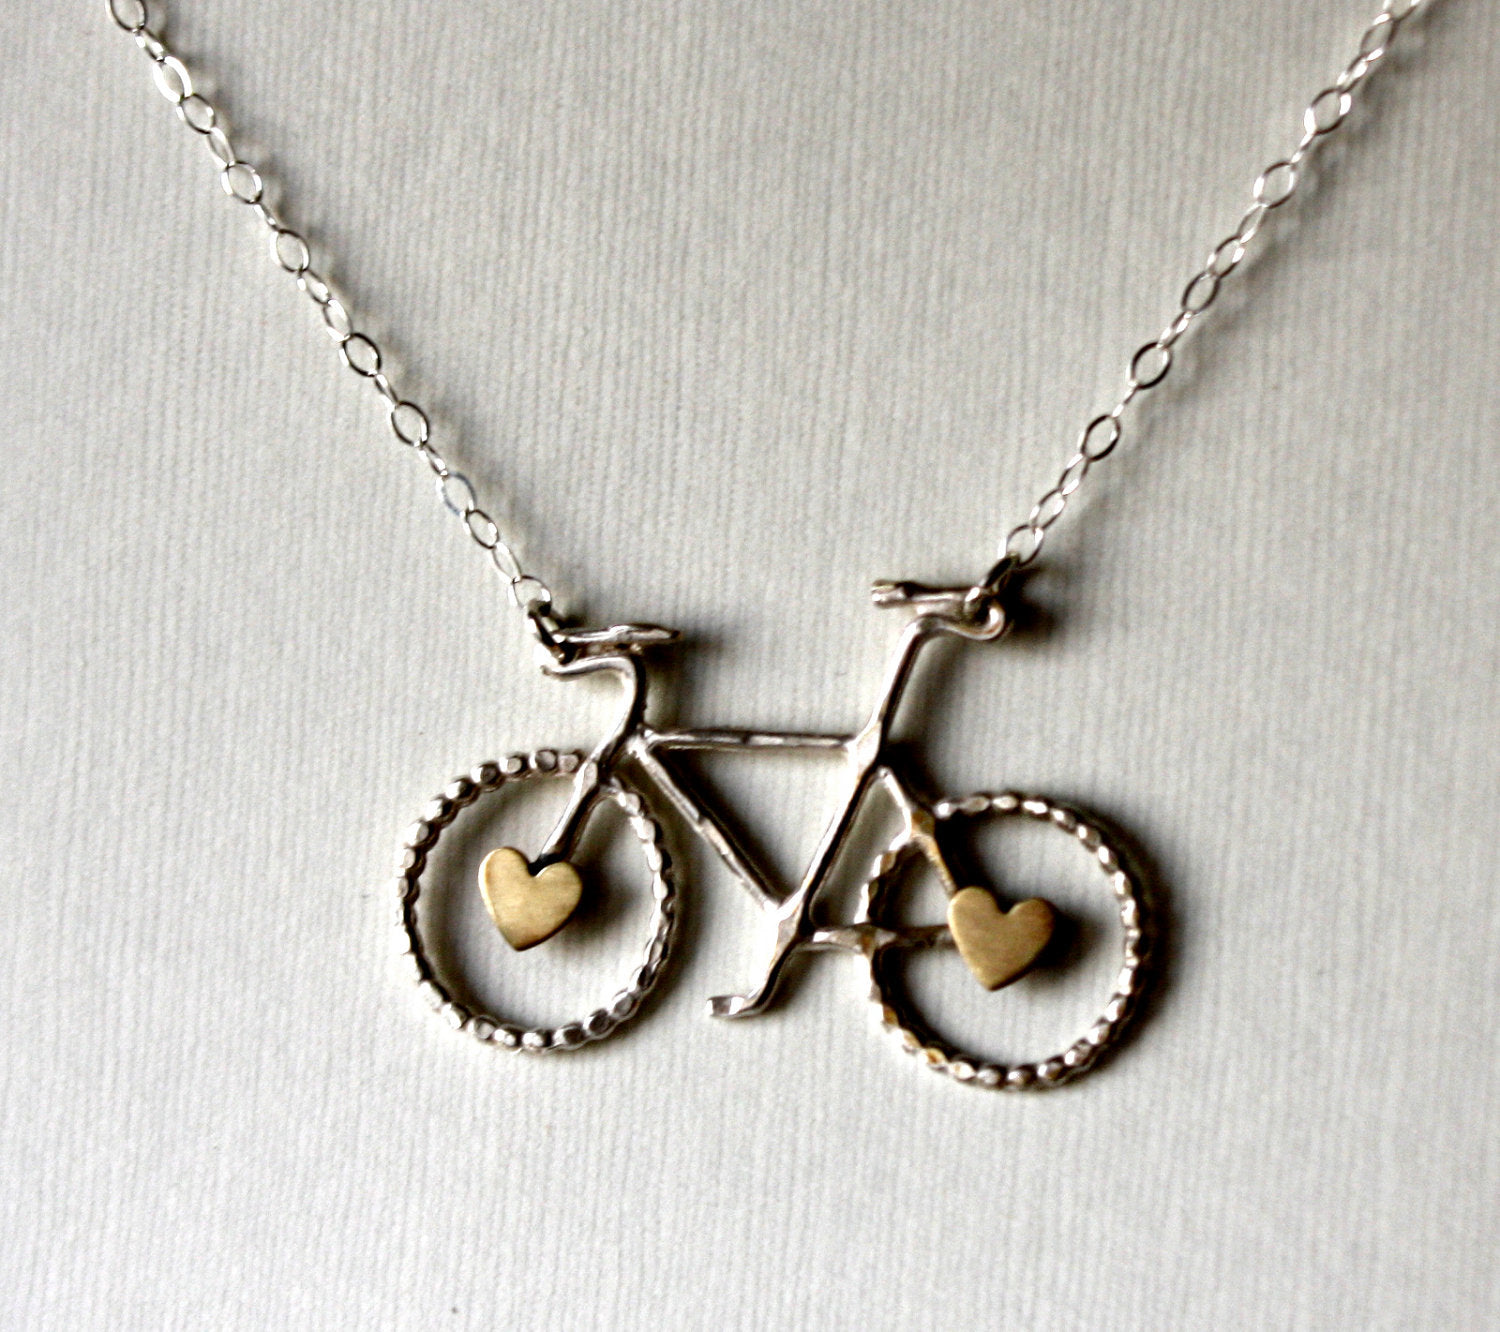 Ready to Ship- Le Petit Bike Necklace with Hearts by Rachel Pfeffer